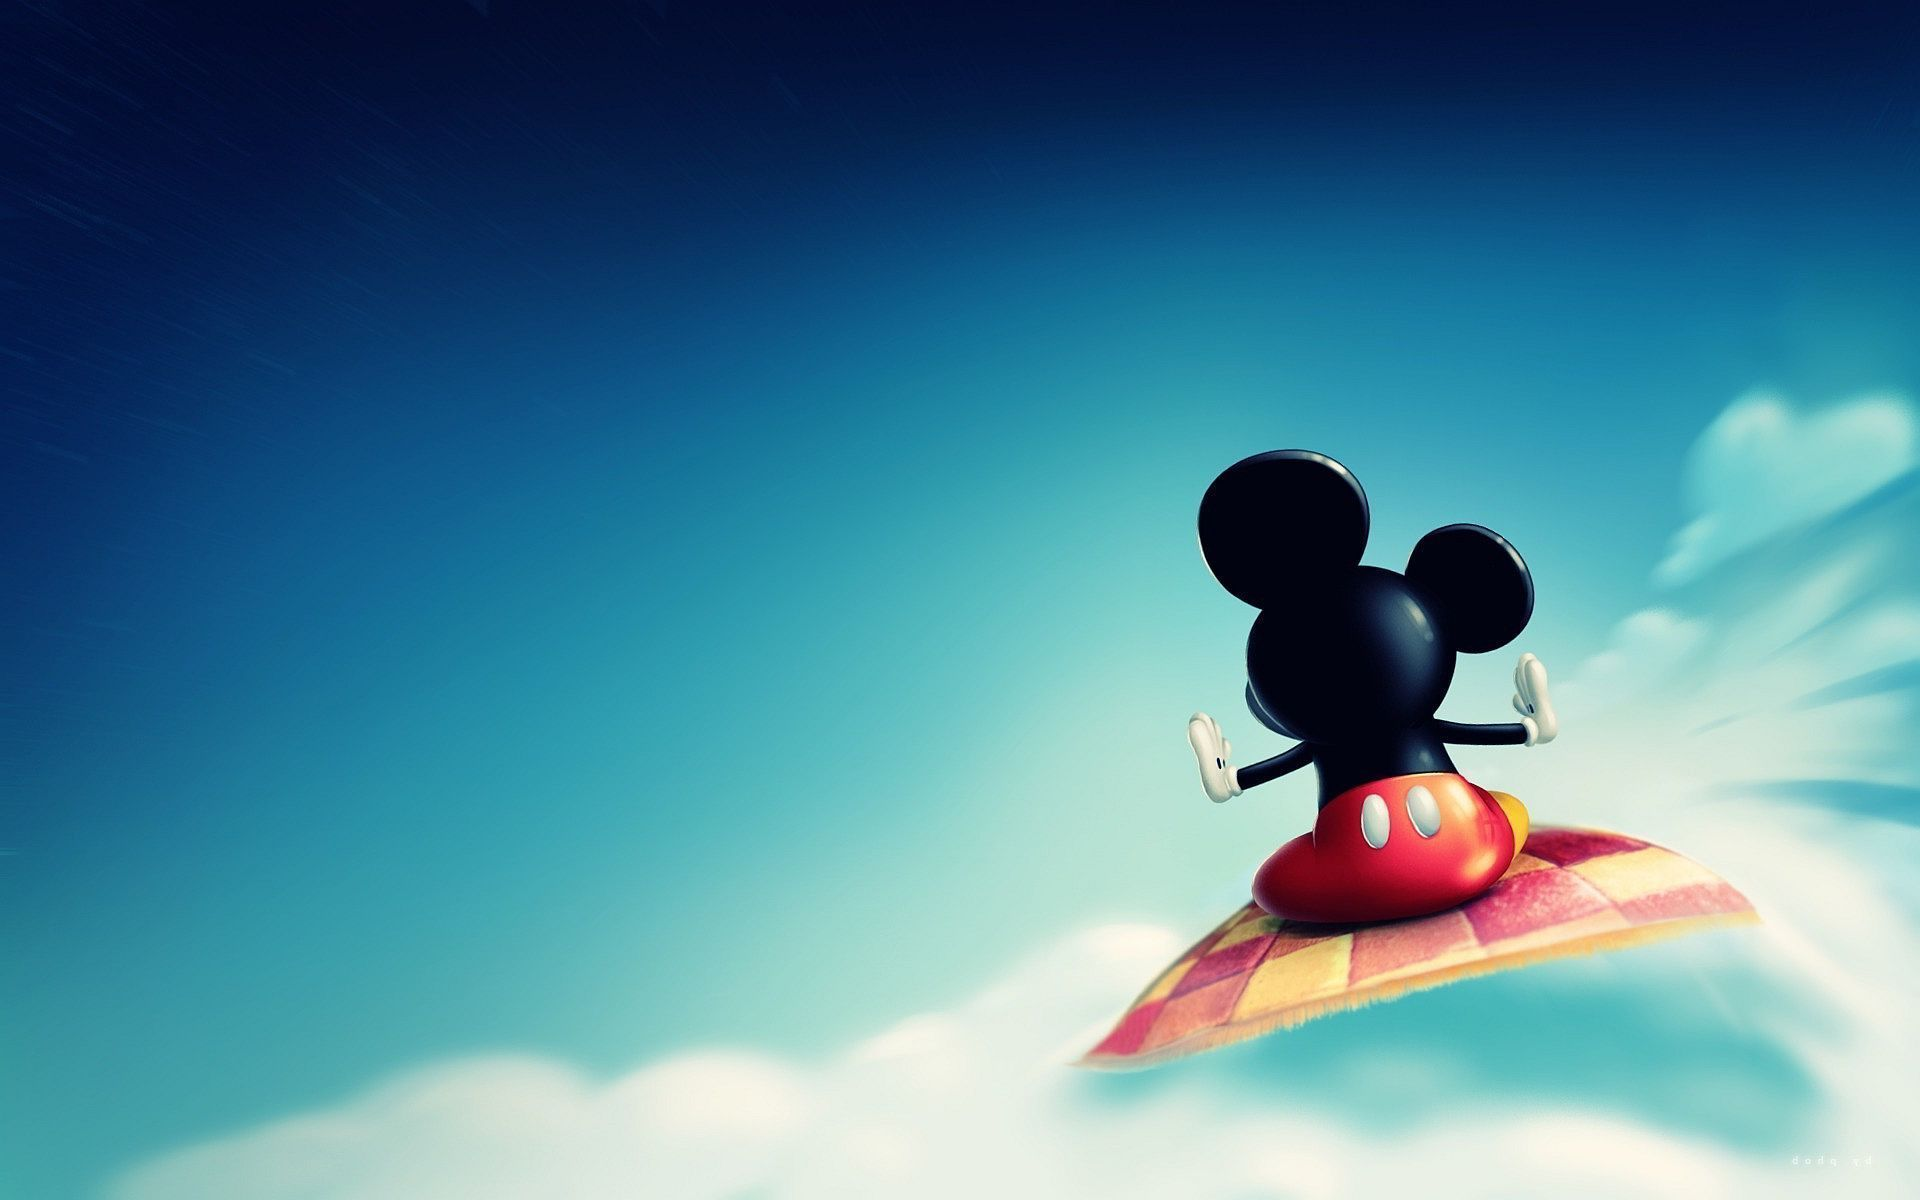 Mickey Mouse Hd Wallpapers Backgrounds Wallpaper Mickey